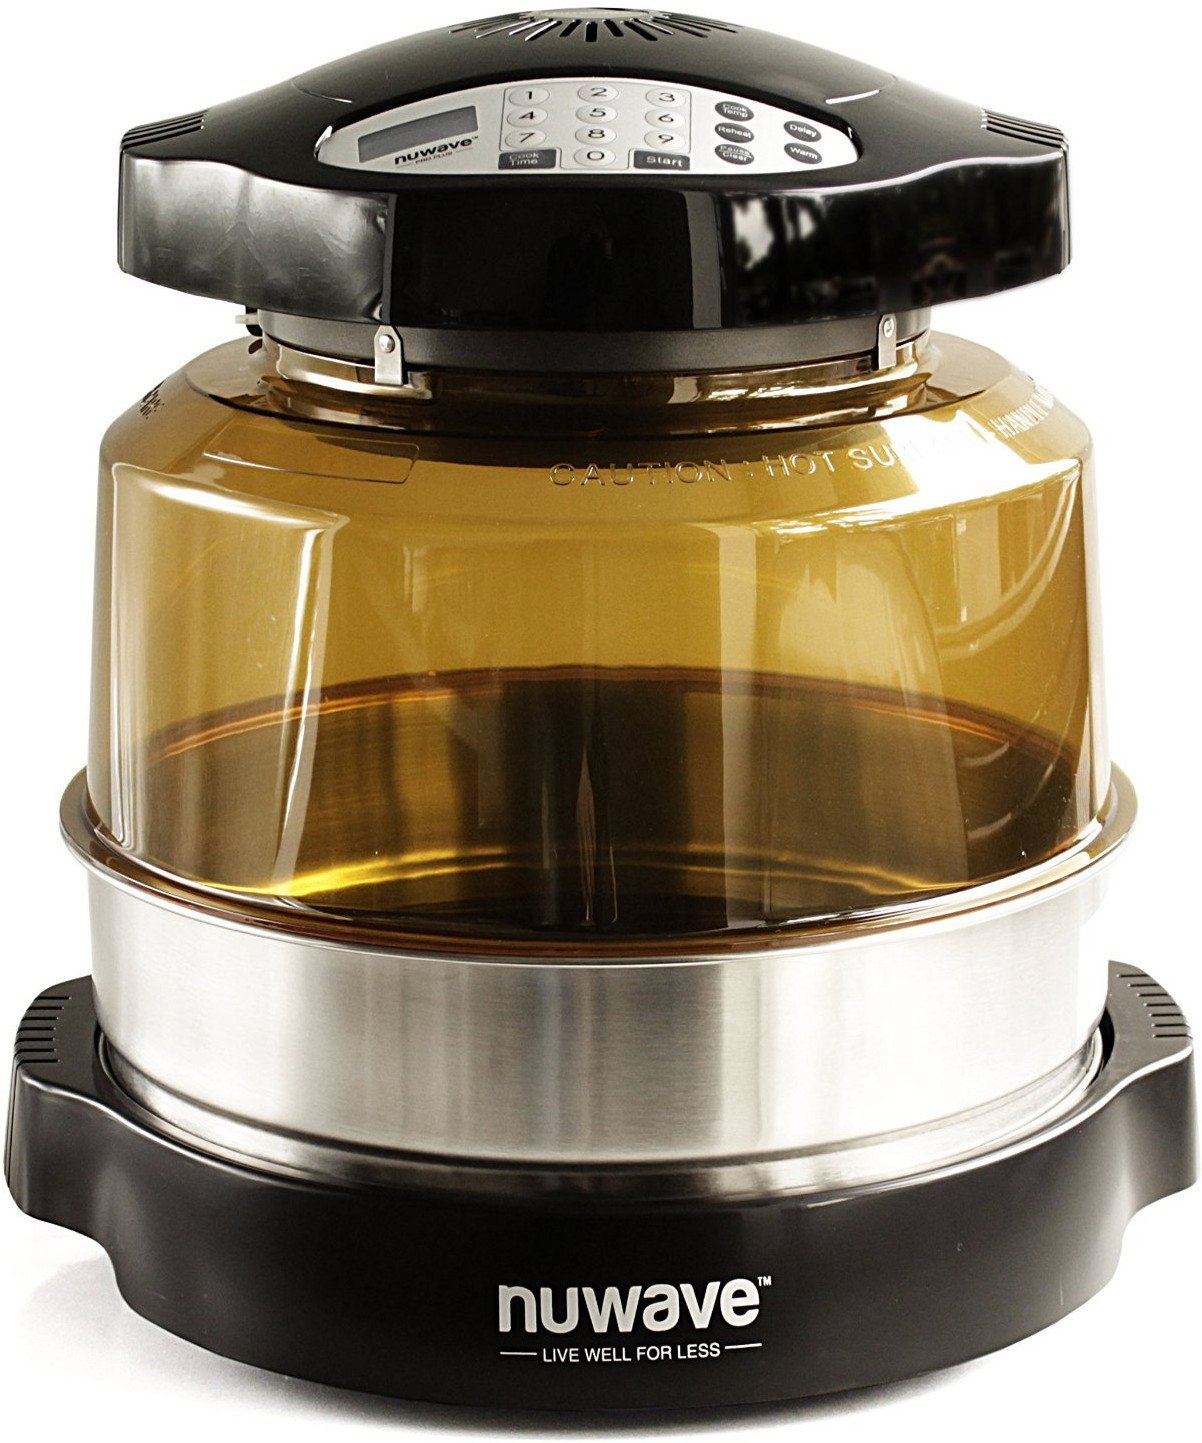 NuWave Pro Plus Oven Black with 3 Extender Ring Kit